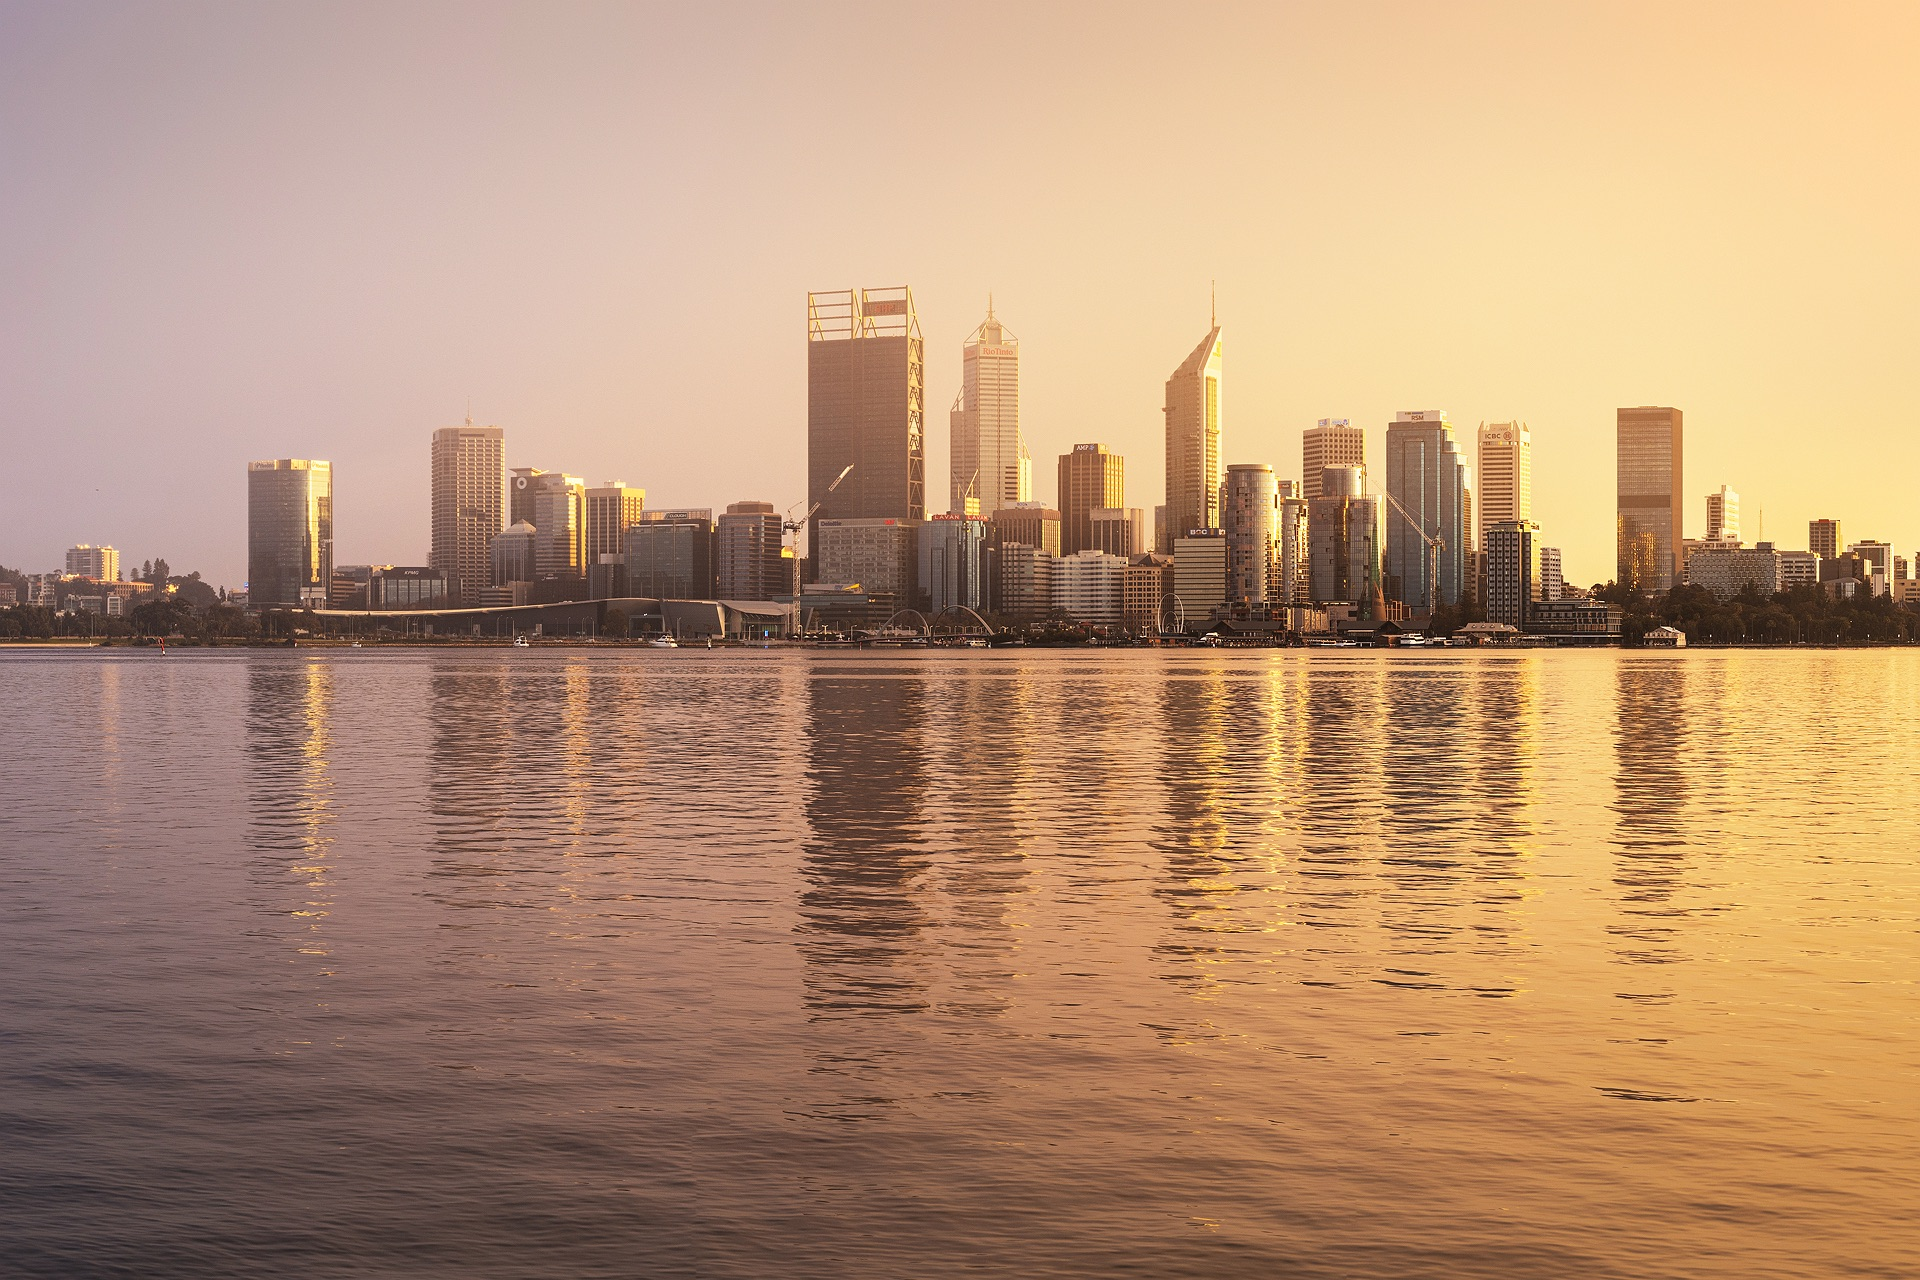 Perth City Skyline 2020